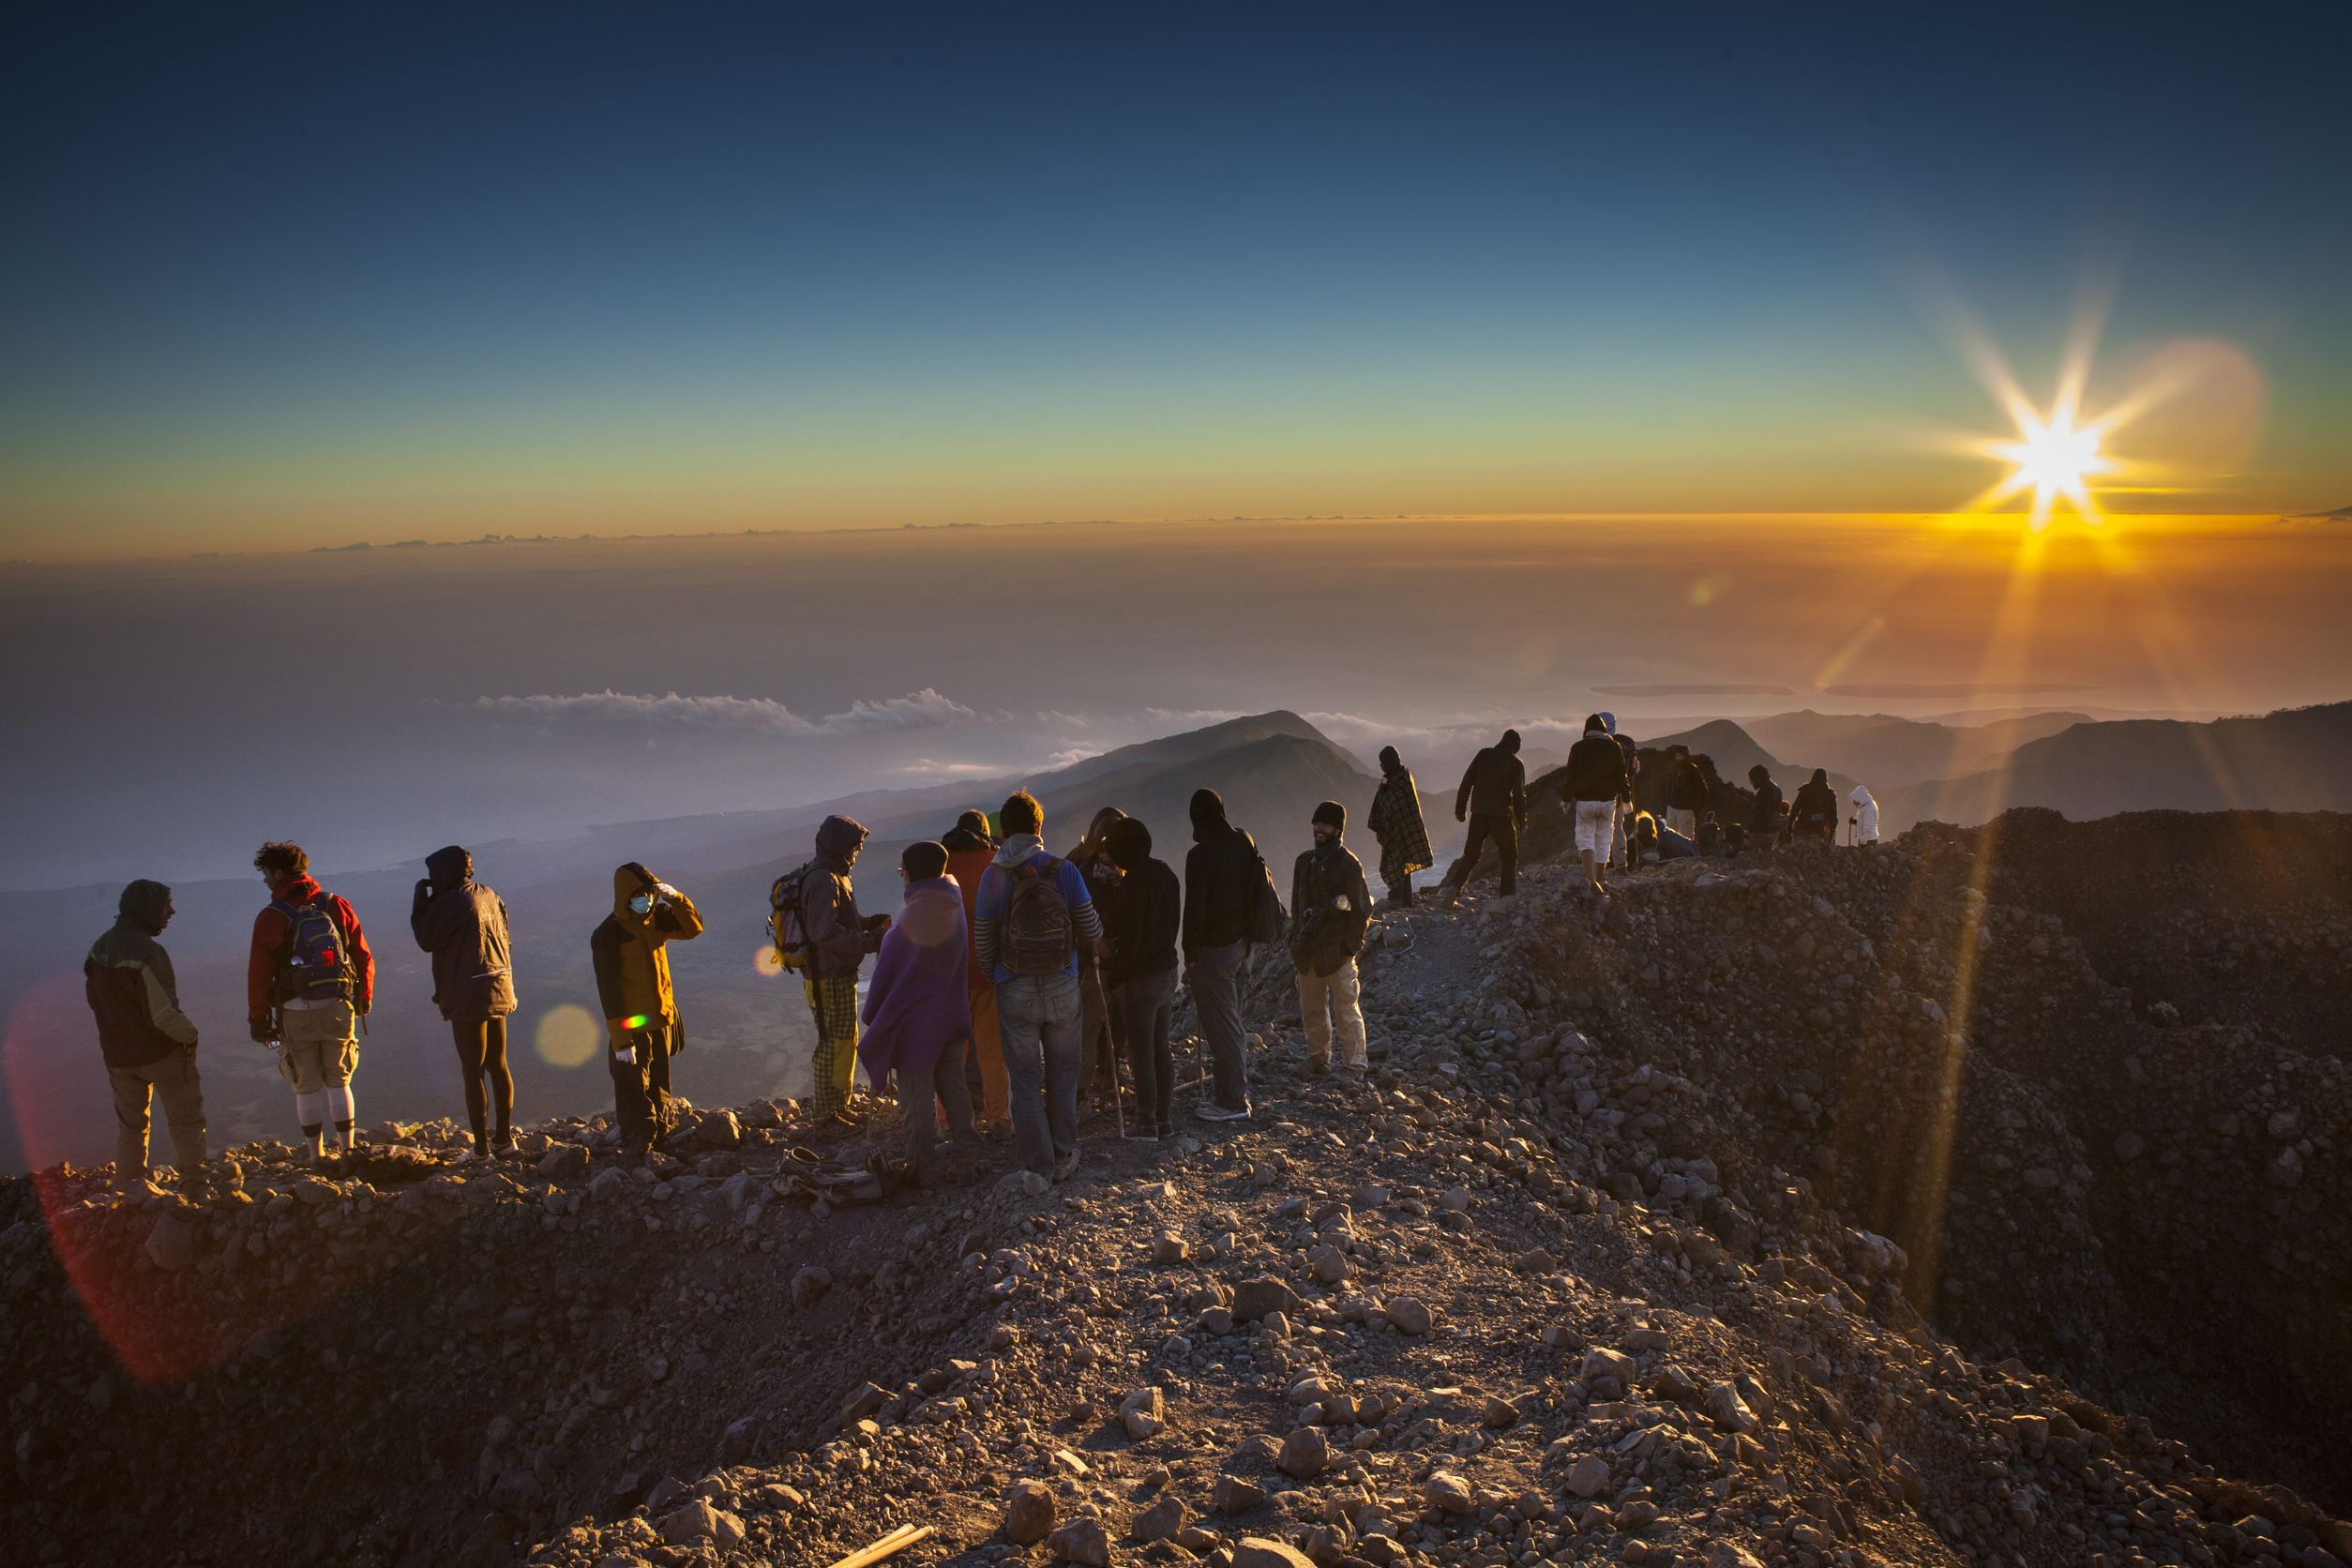 The top of Rinjani Mt 3,726m Lombok island, Indonesia - August 12, 2012